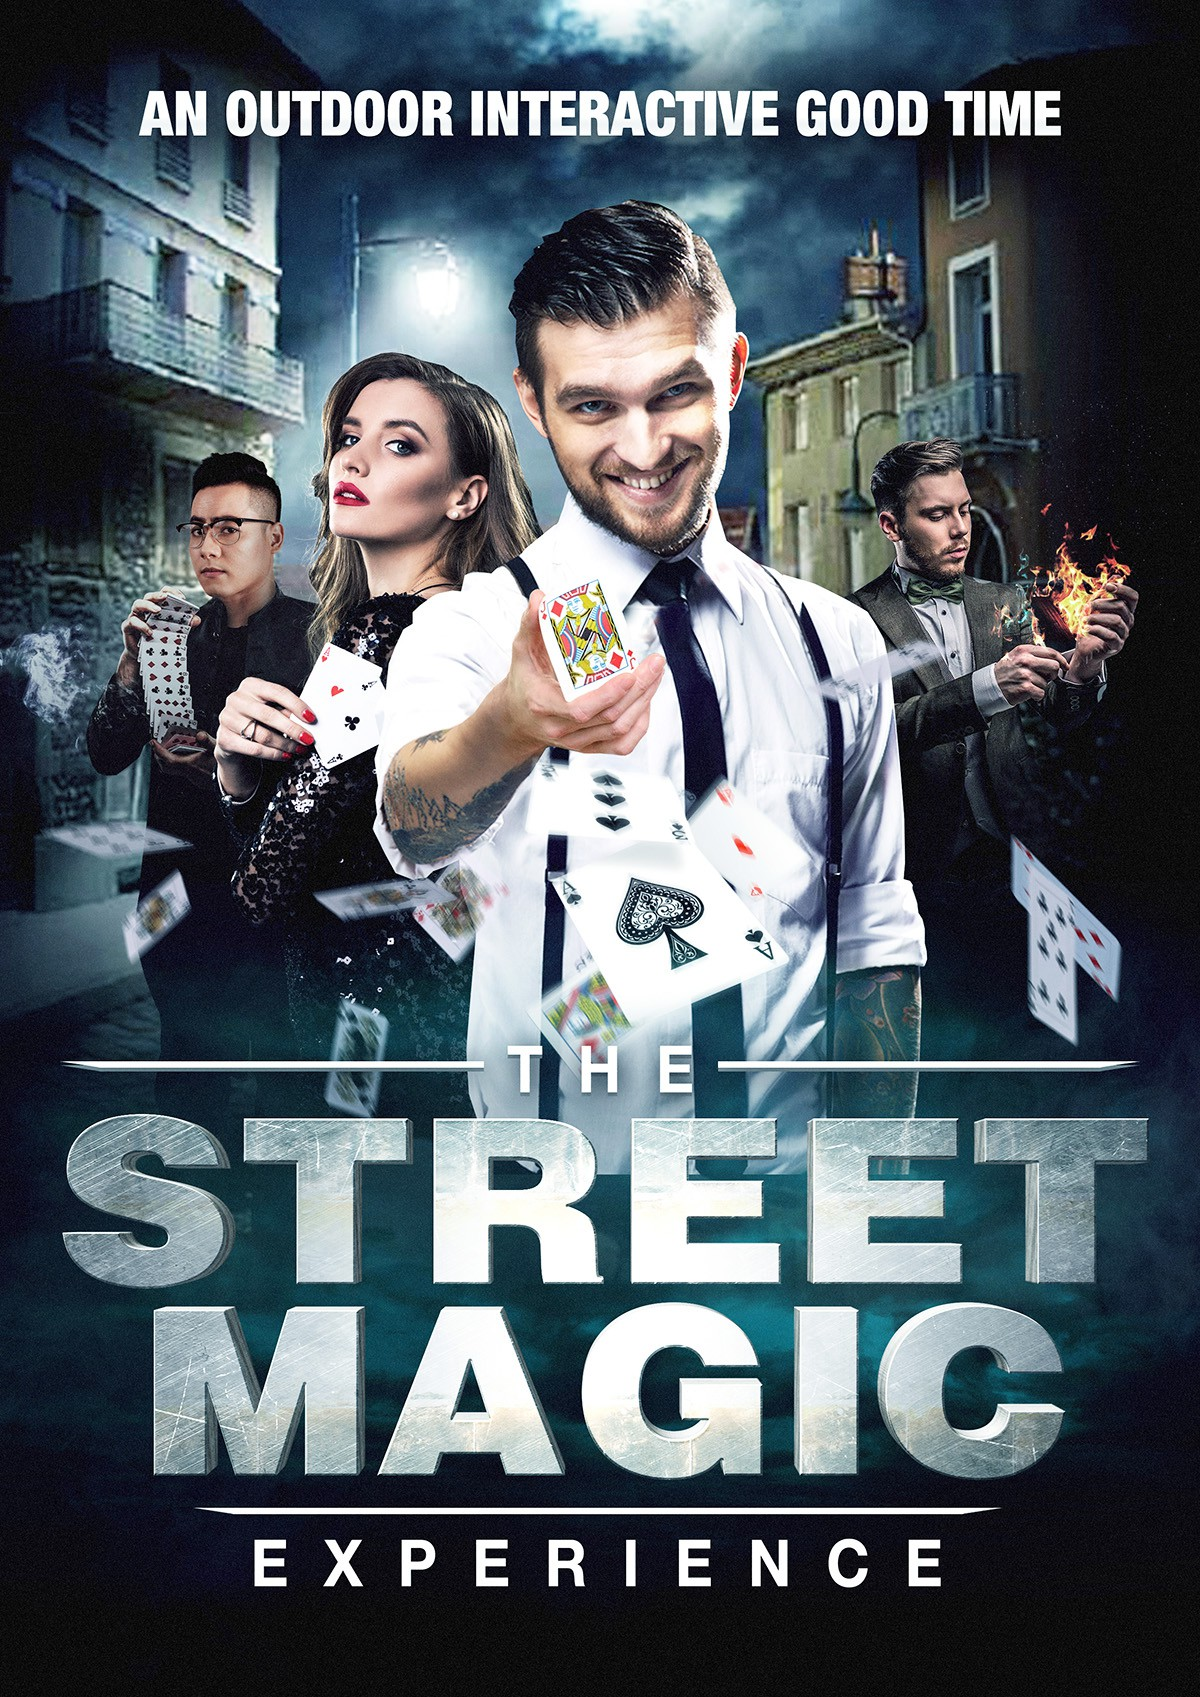 Design a poster for a hipster street magic experience